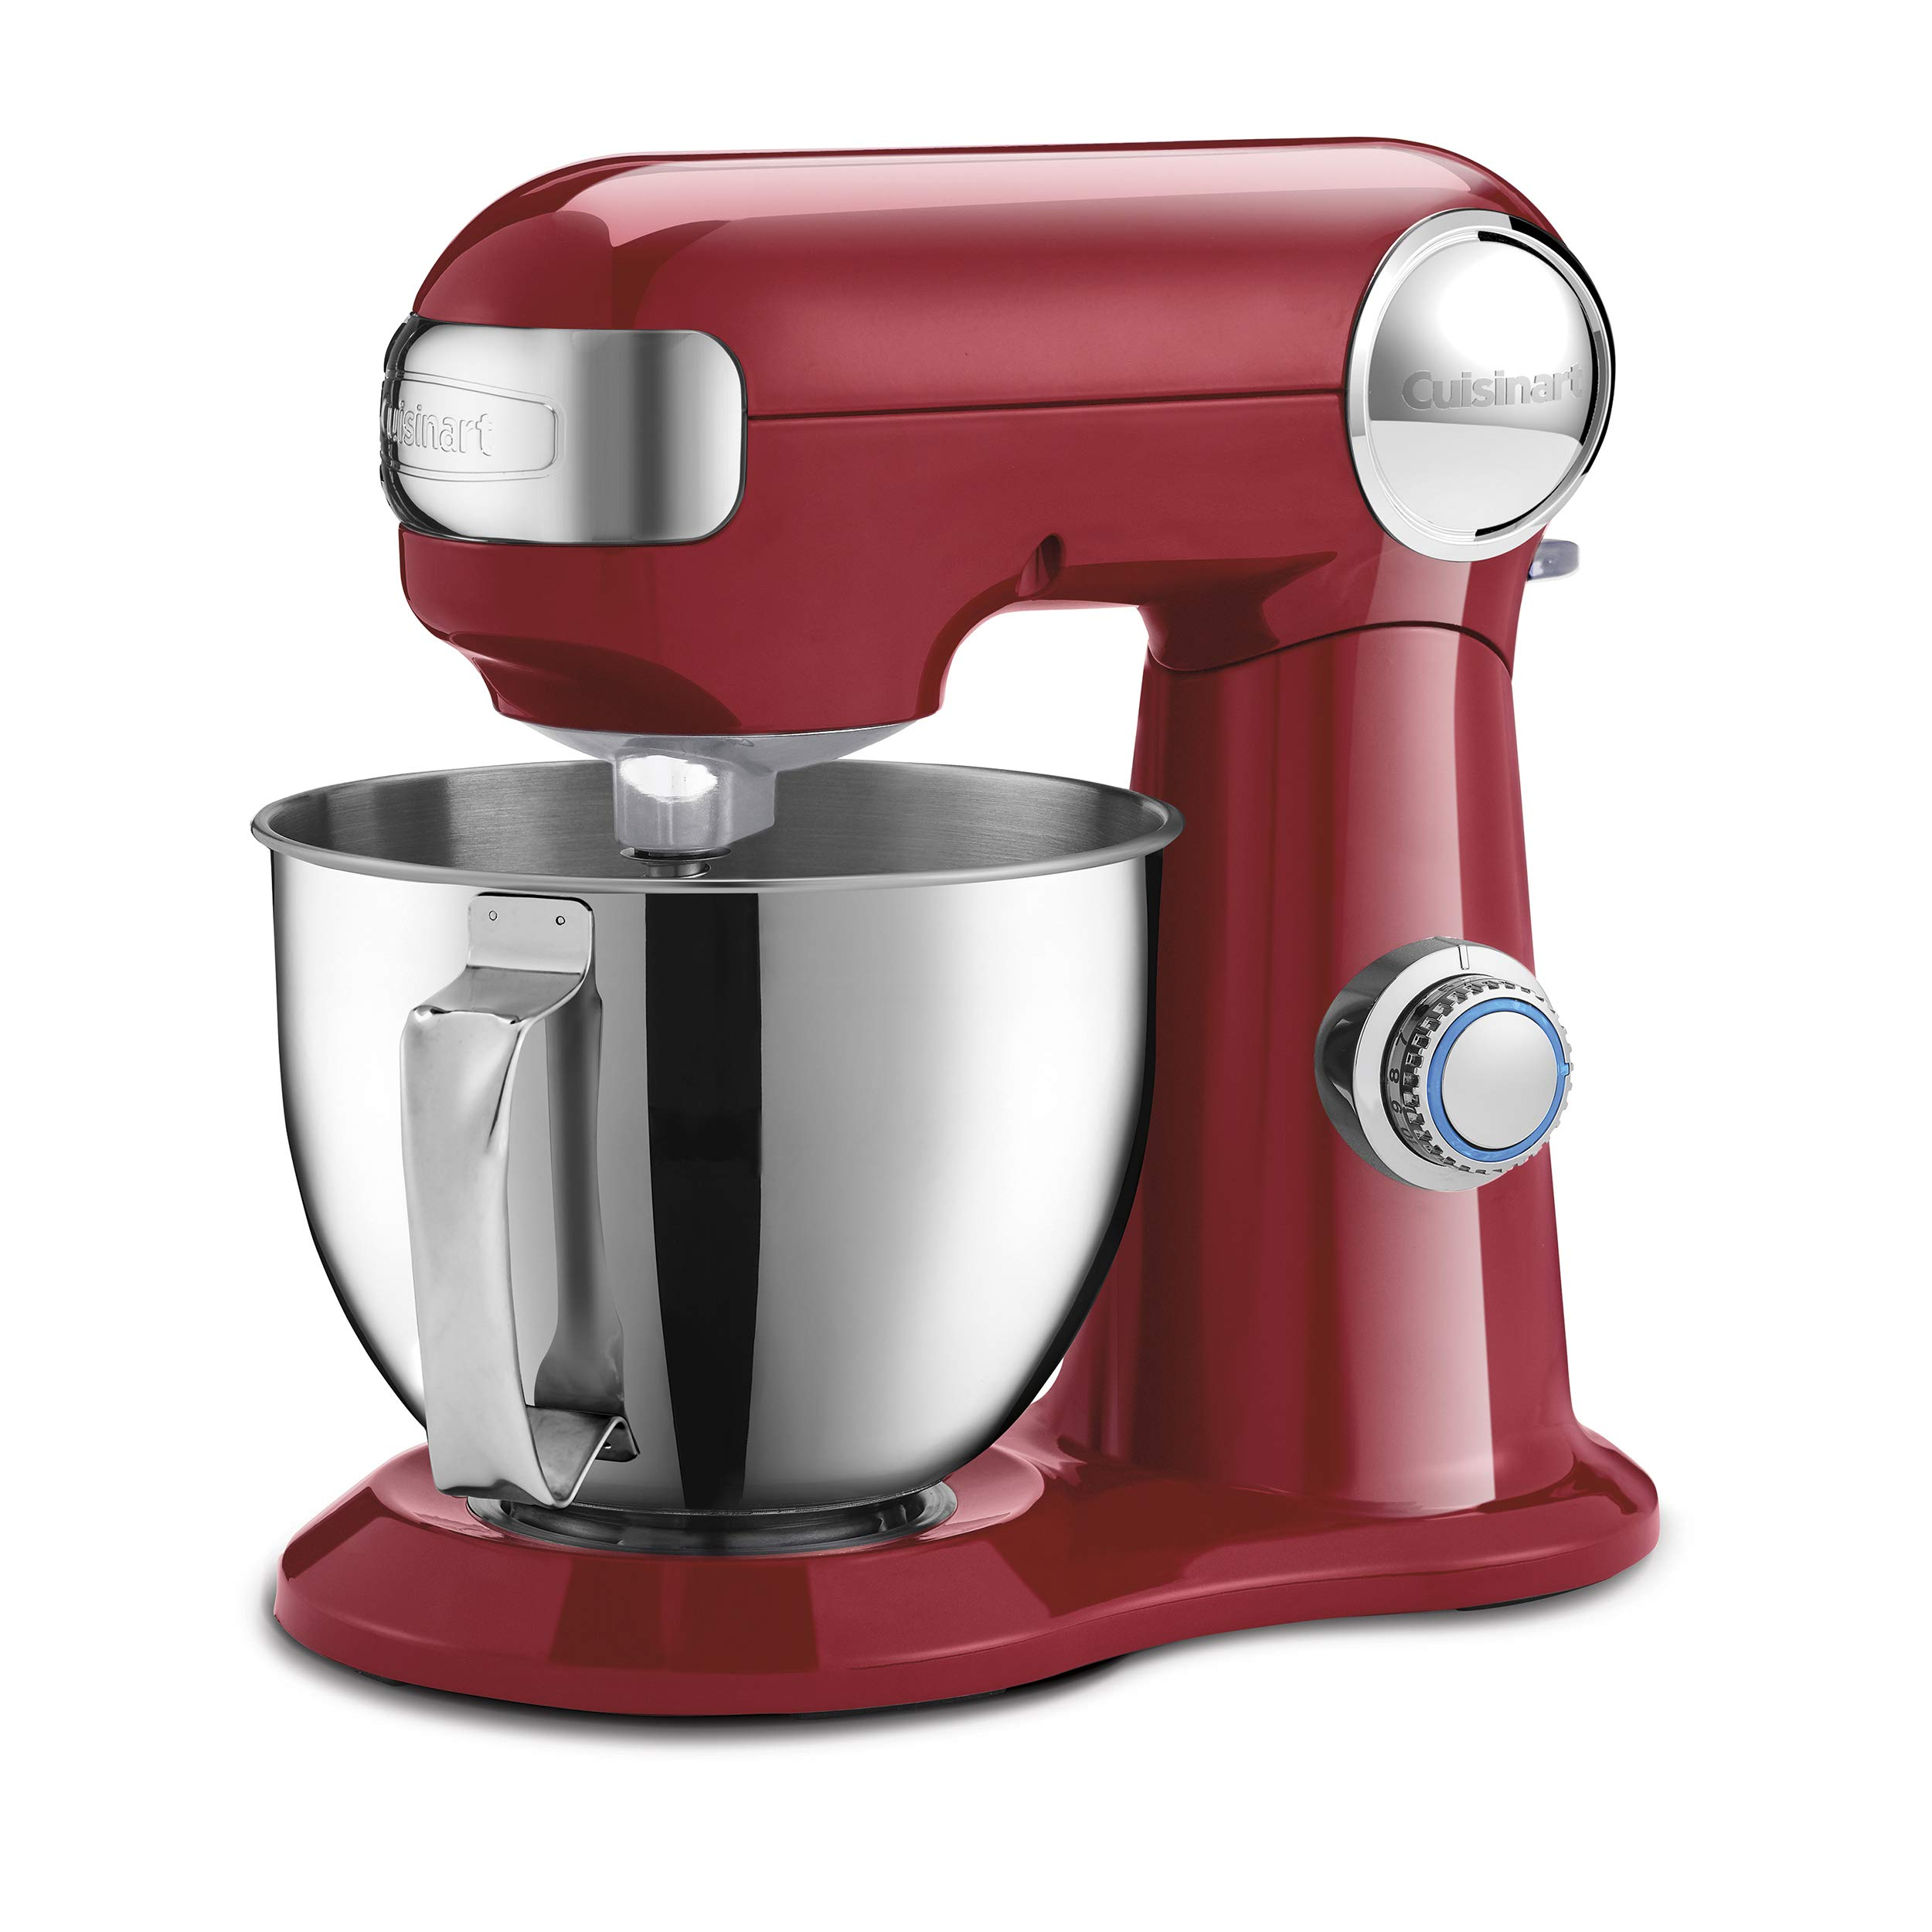 Cuisinart SM-35R Precision Master 3.5 Quart (Ruby Red) stand mixer, by Cuisinart